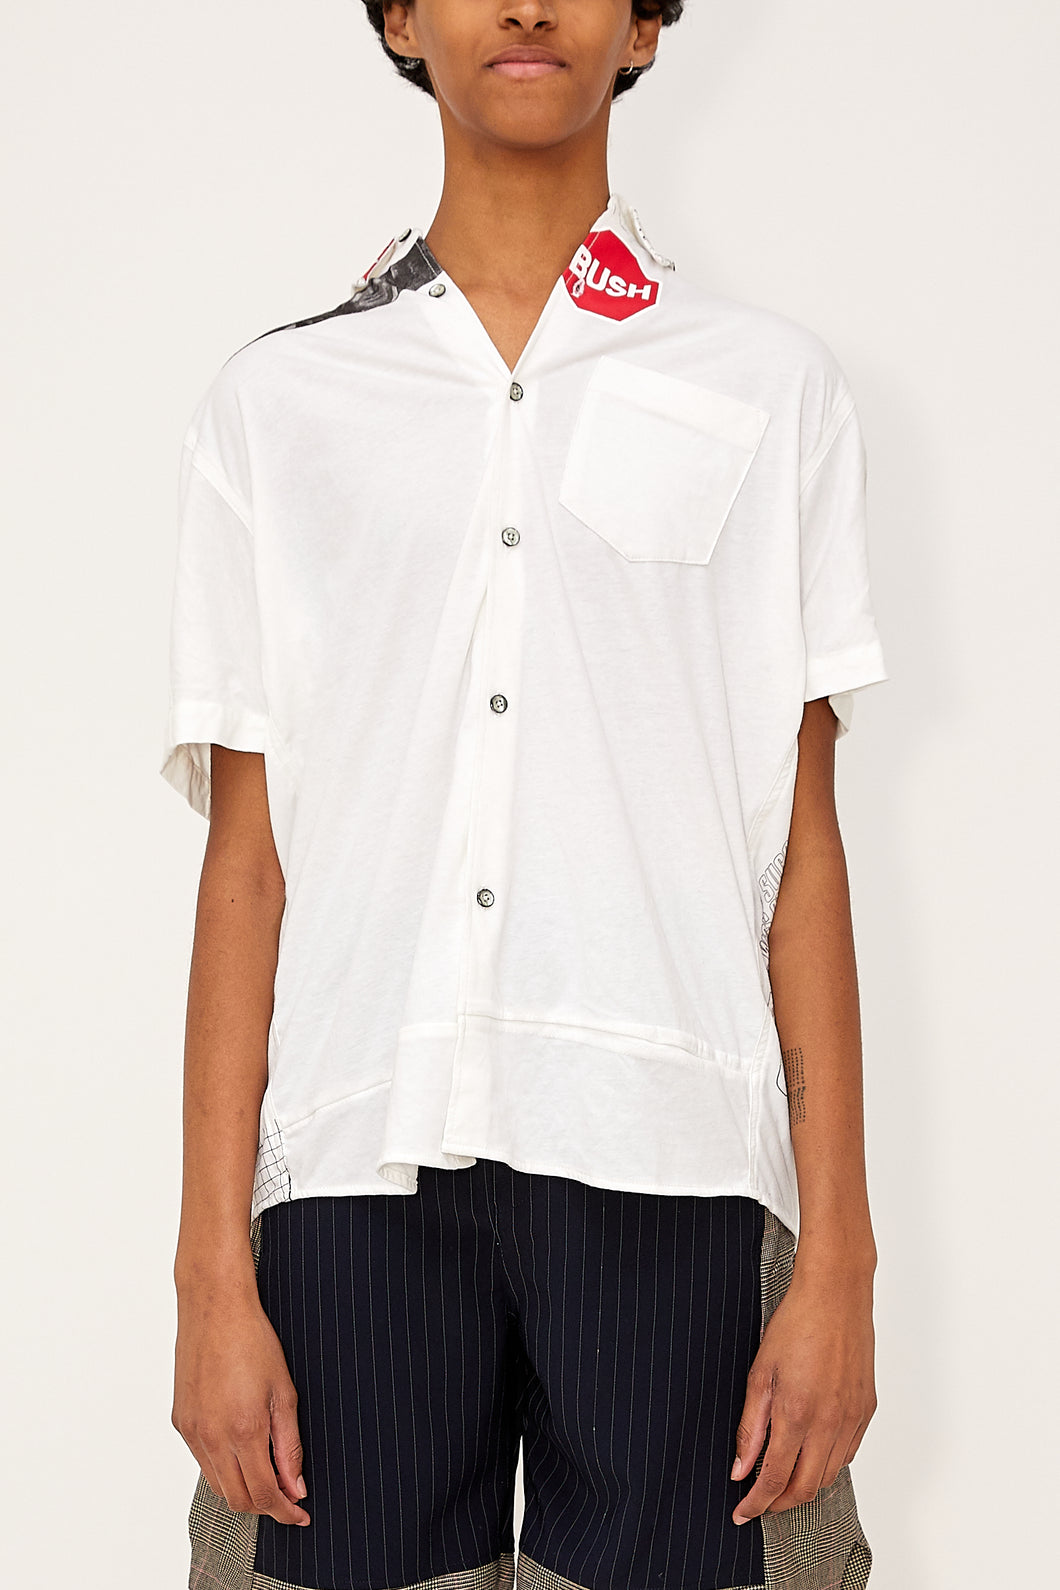 Bstroy x HommeBoy Reconstructed Button Up (White)